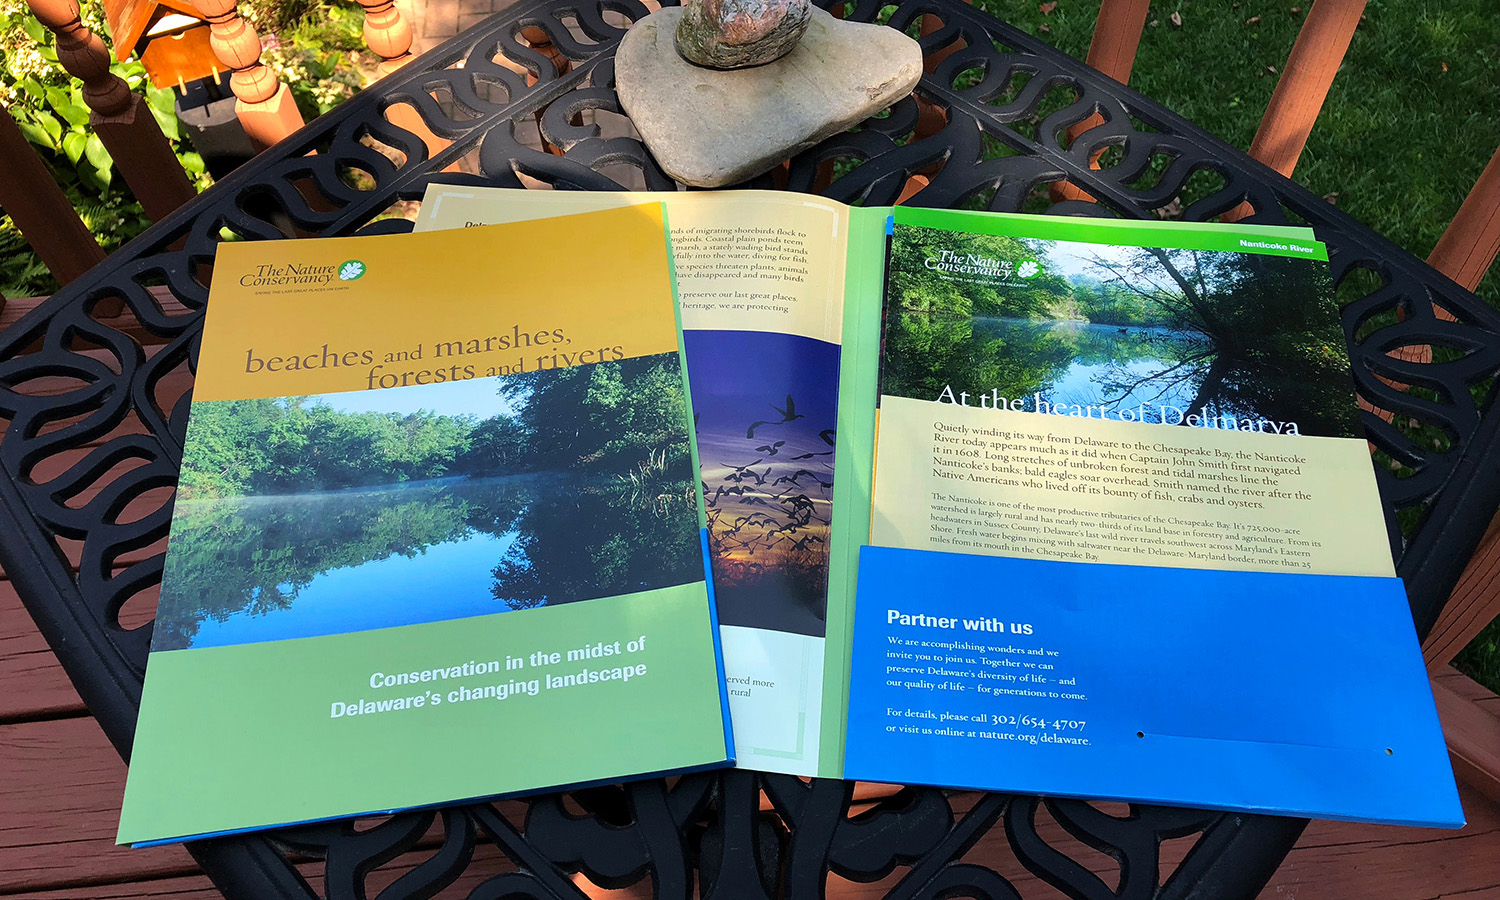 Examples of print work for The Nature Conservancy